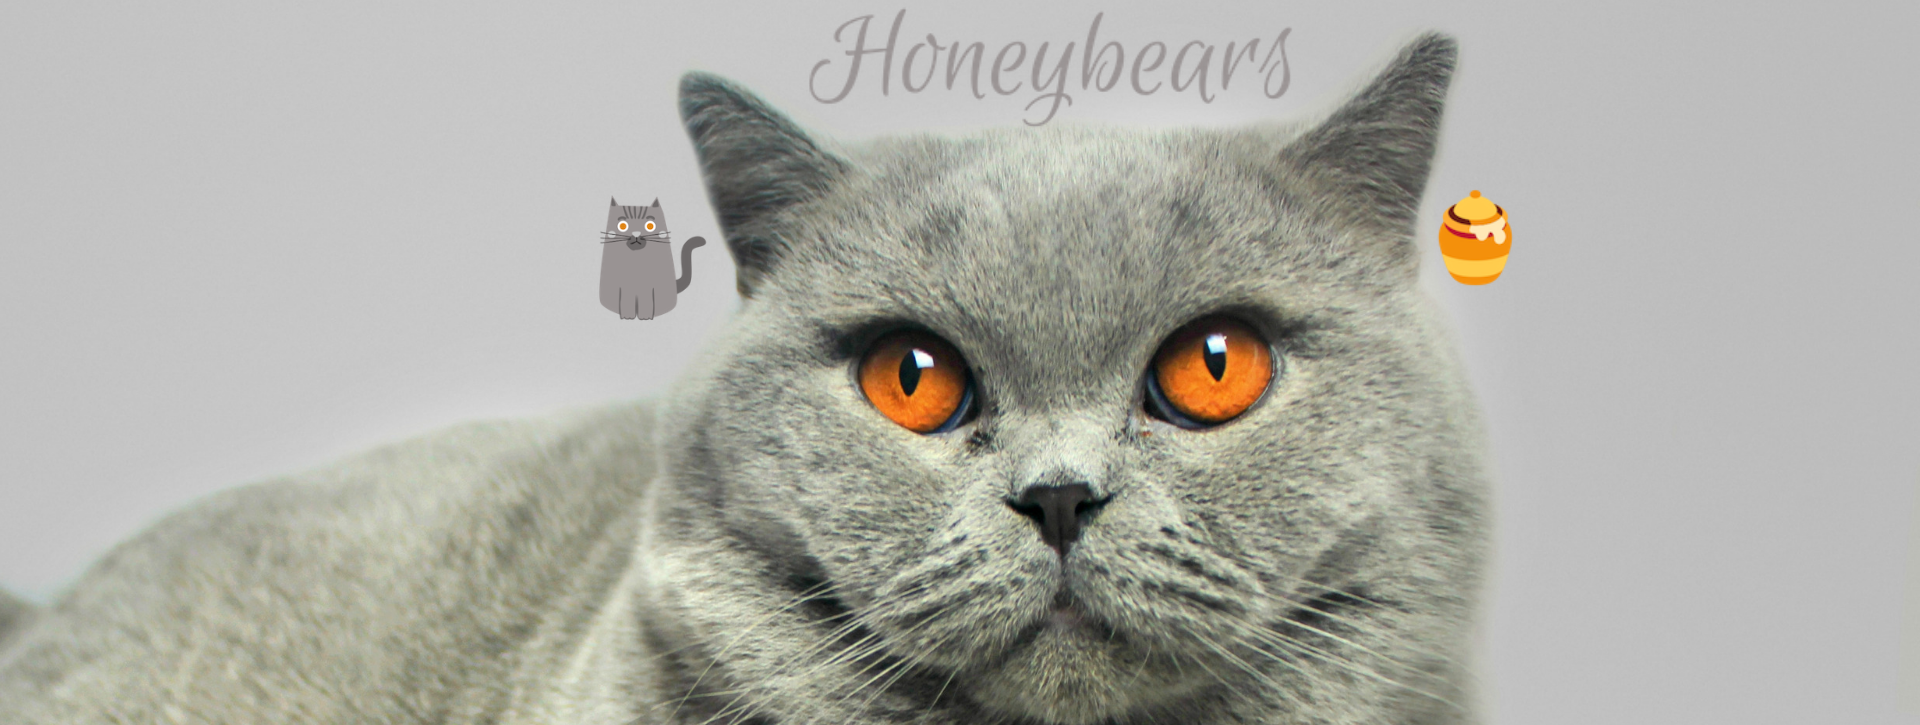 honeybears_merlin_banner